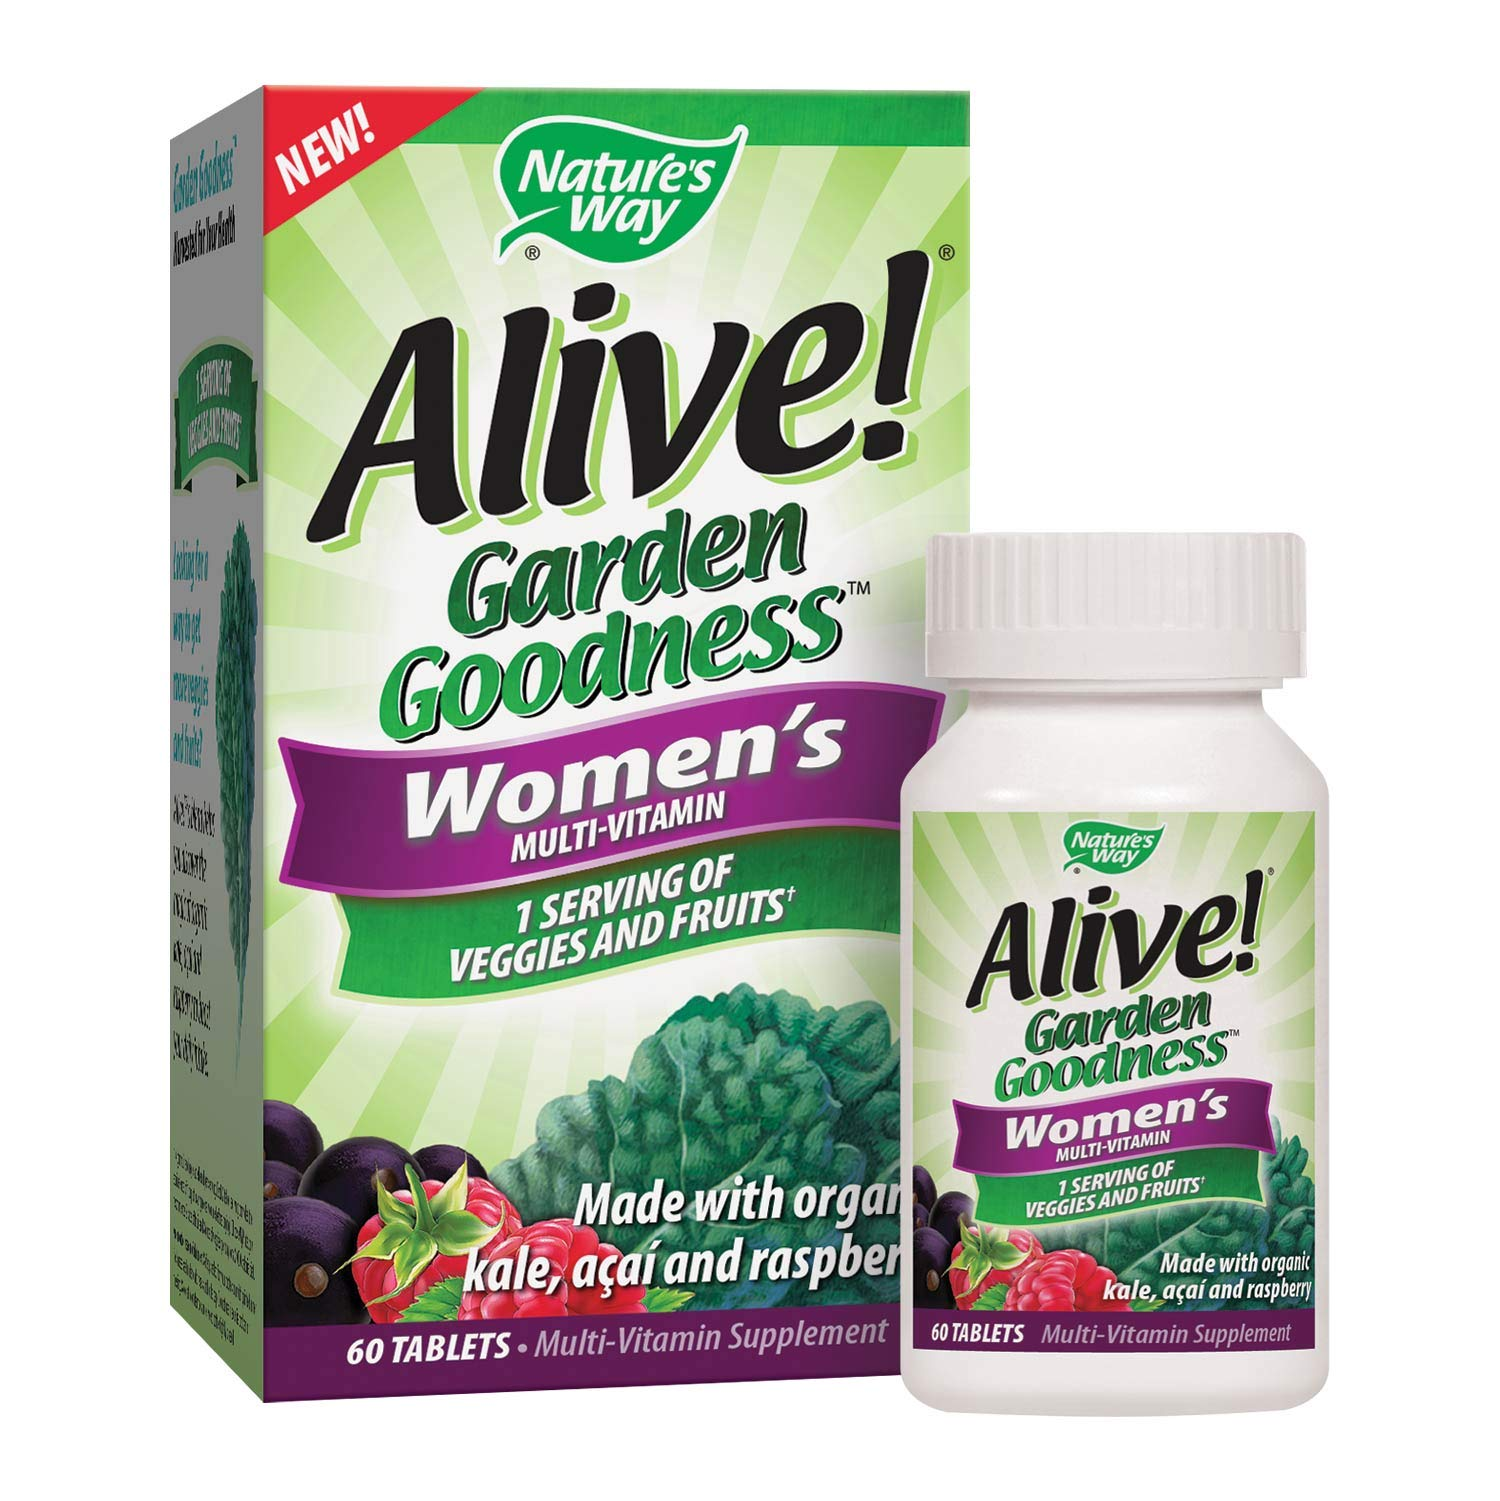 Nature's Way Alive! Garden Goodness Women's  Multivitamin, Veggie & Fruit Blend (1400mg per serving), Made with Organic Kale, 60 Tablets